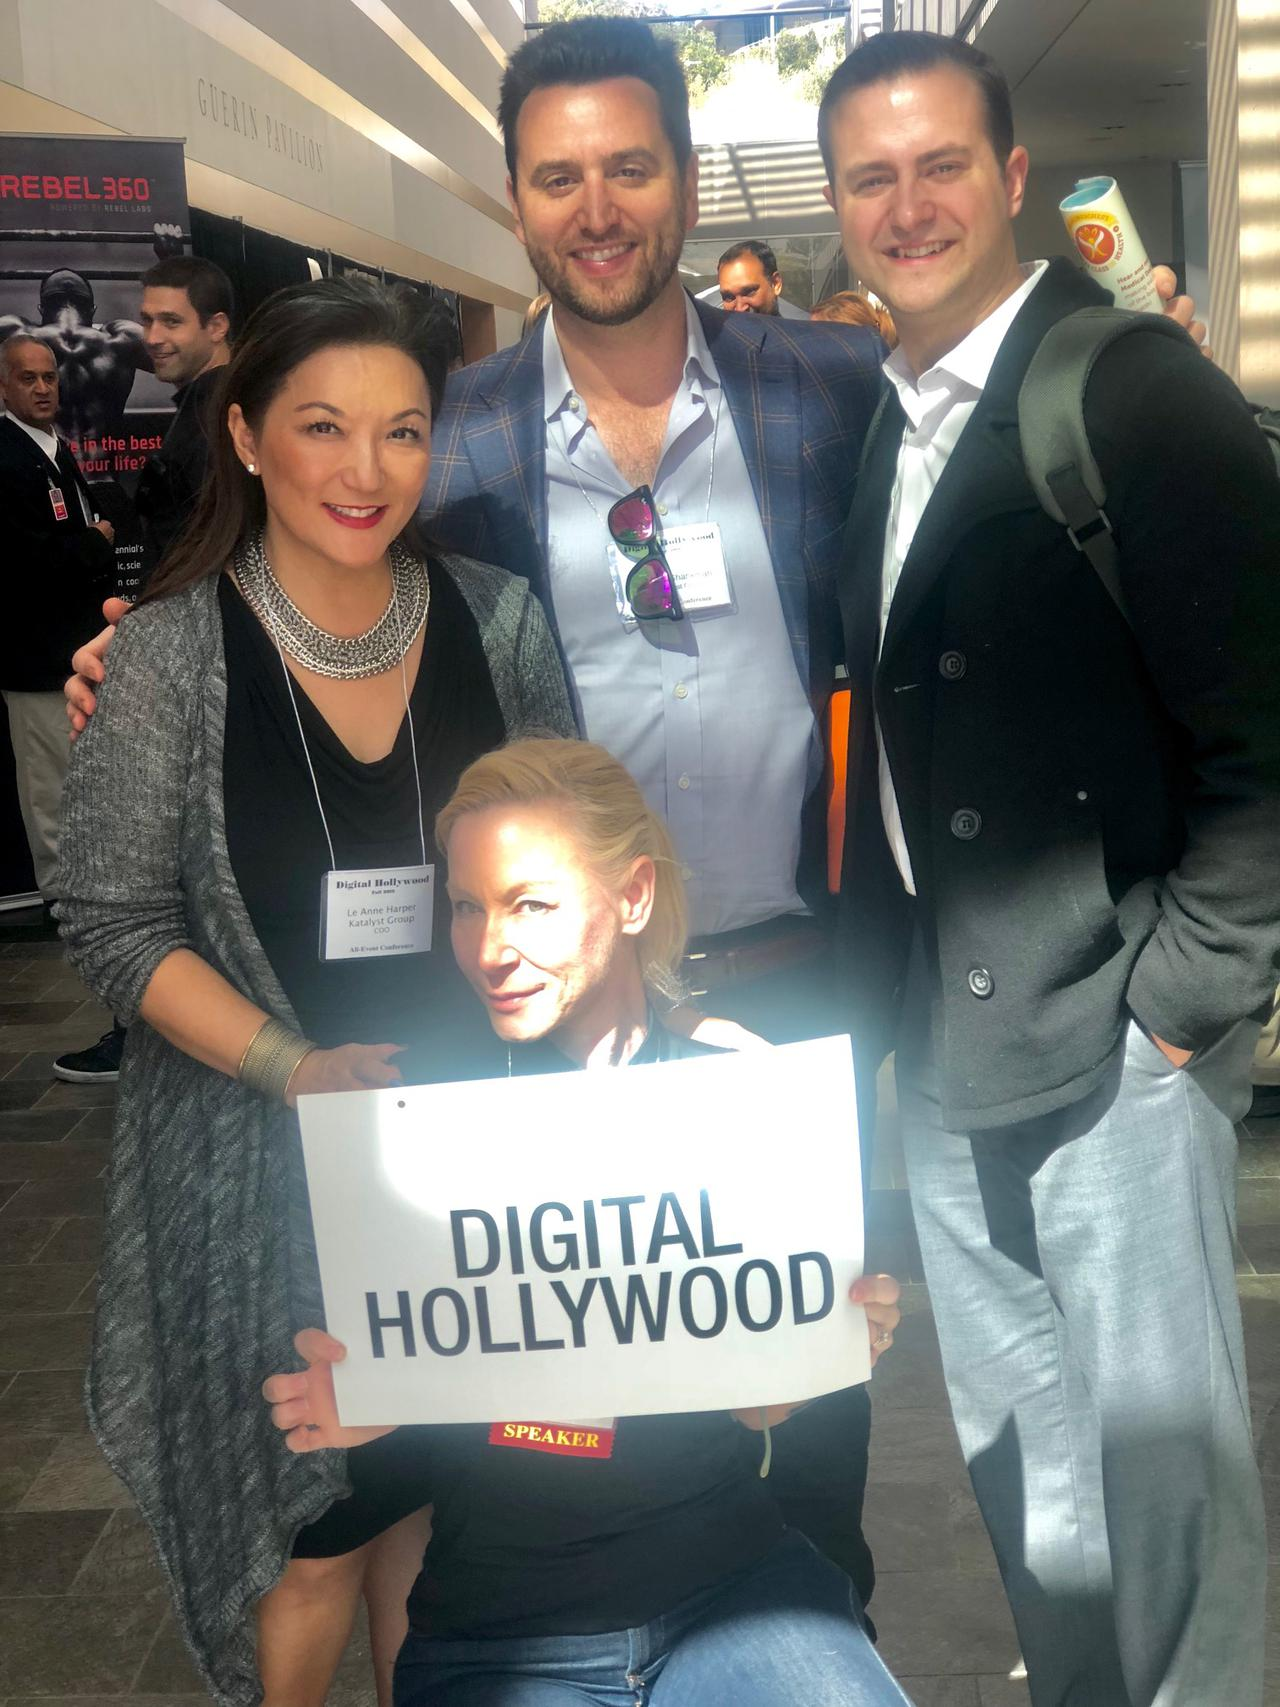 digital hollywood oct 2018.jpg